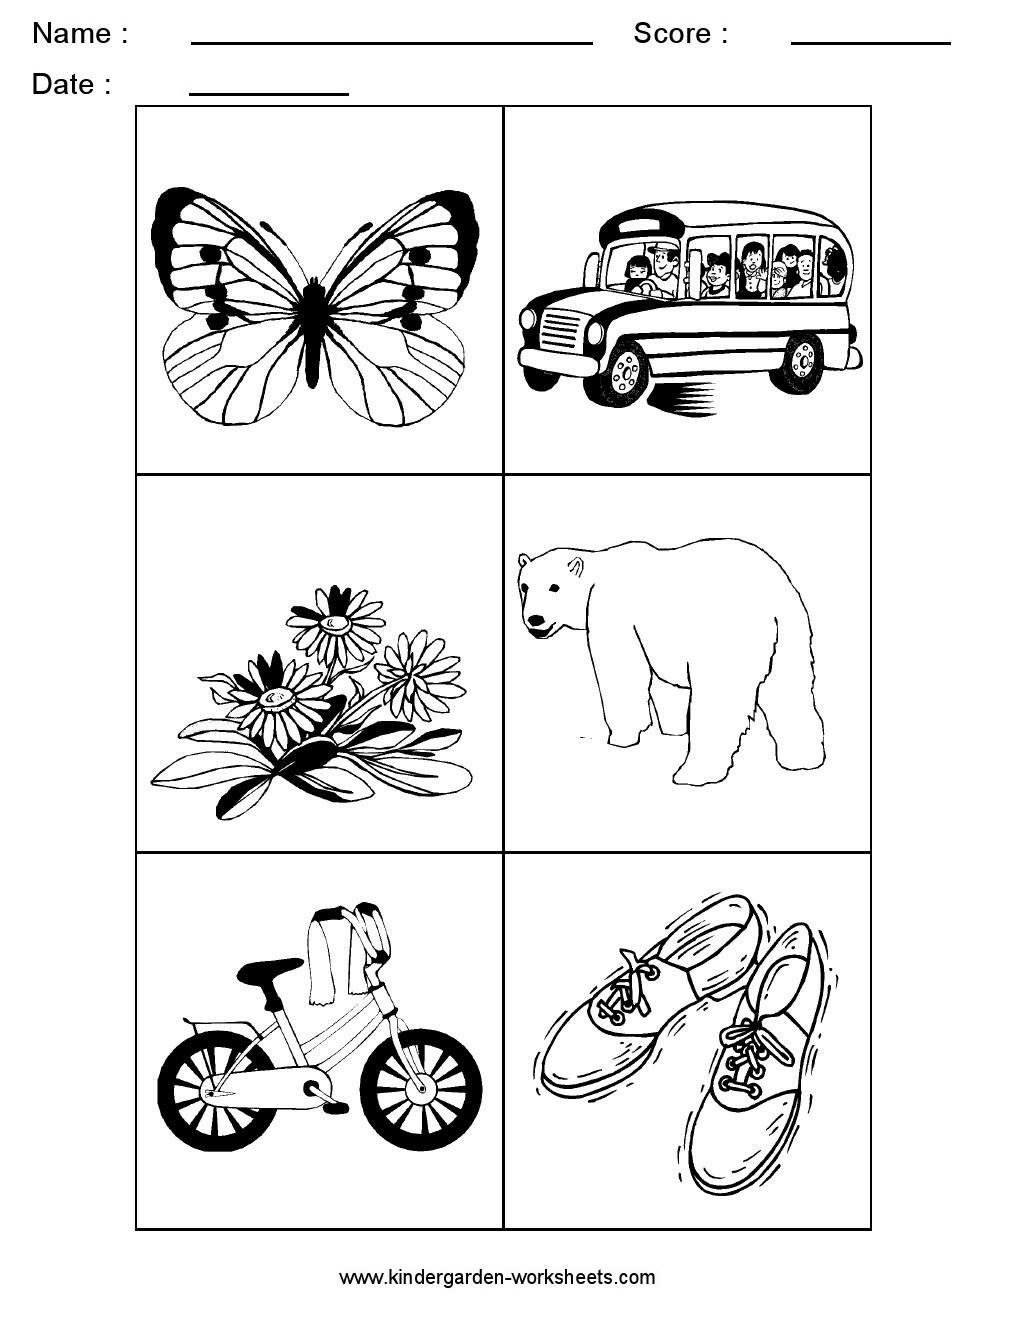 worksheet Letter B Worksheets For Preschool kindergarten worksheets alphabet picture cards sorting letter b